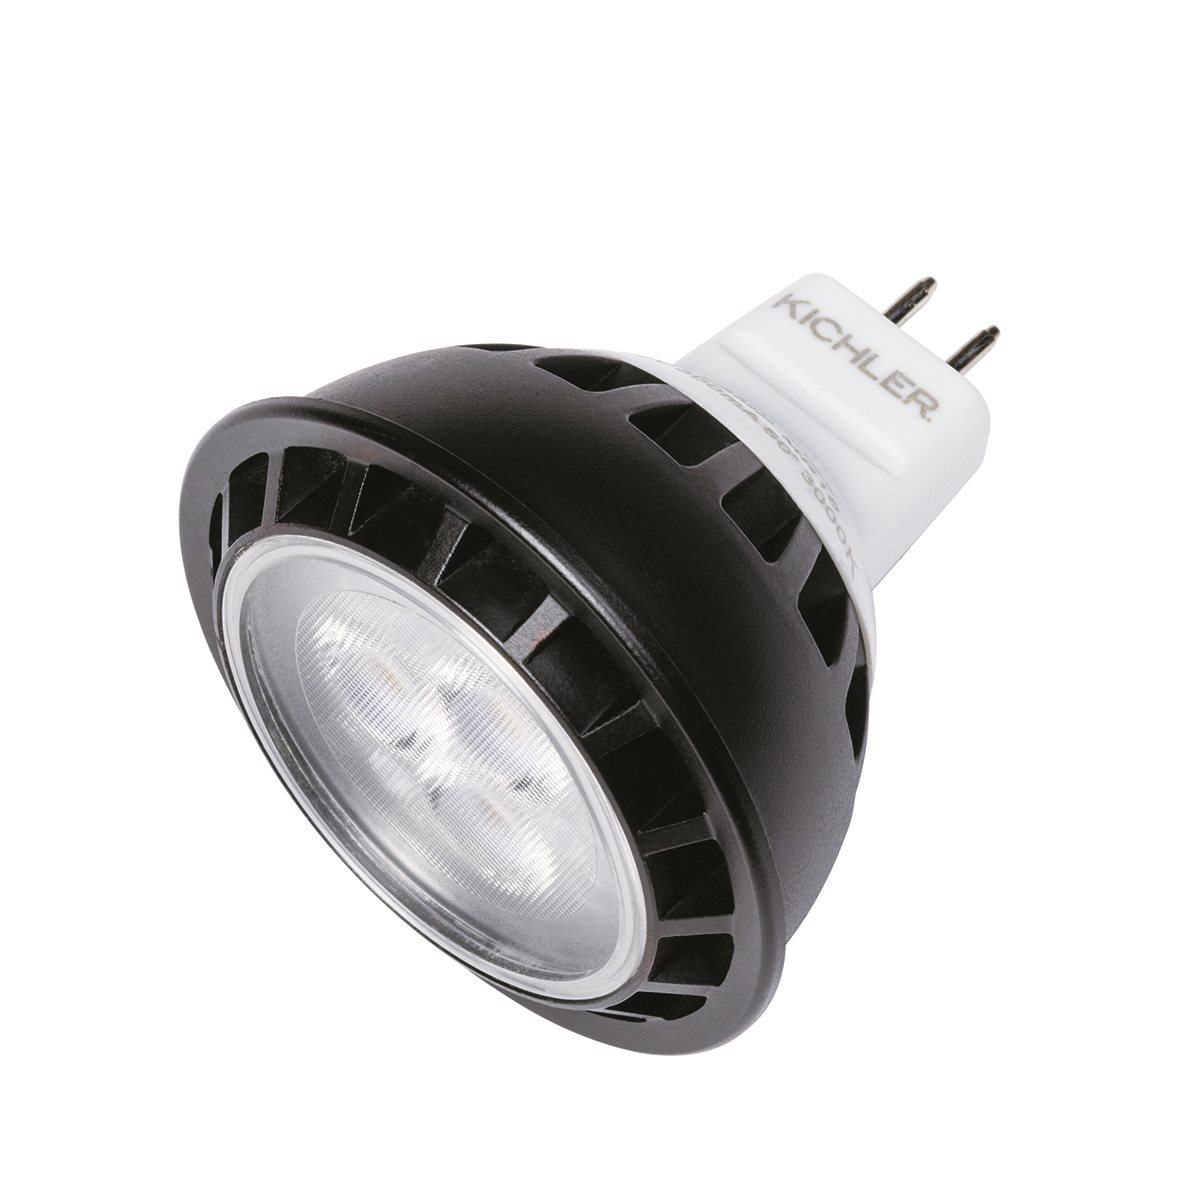 Kichler Lighting Utilitarian Landscape 12V LED Lamp - 18140